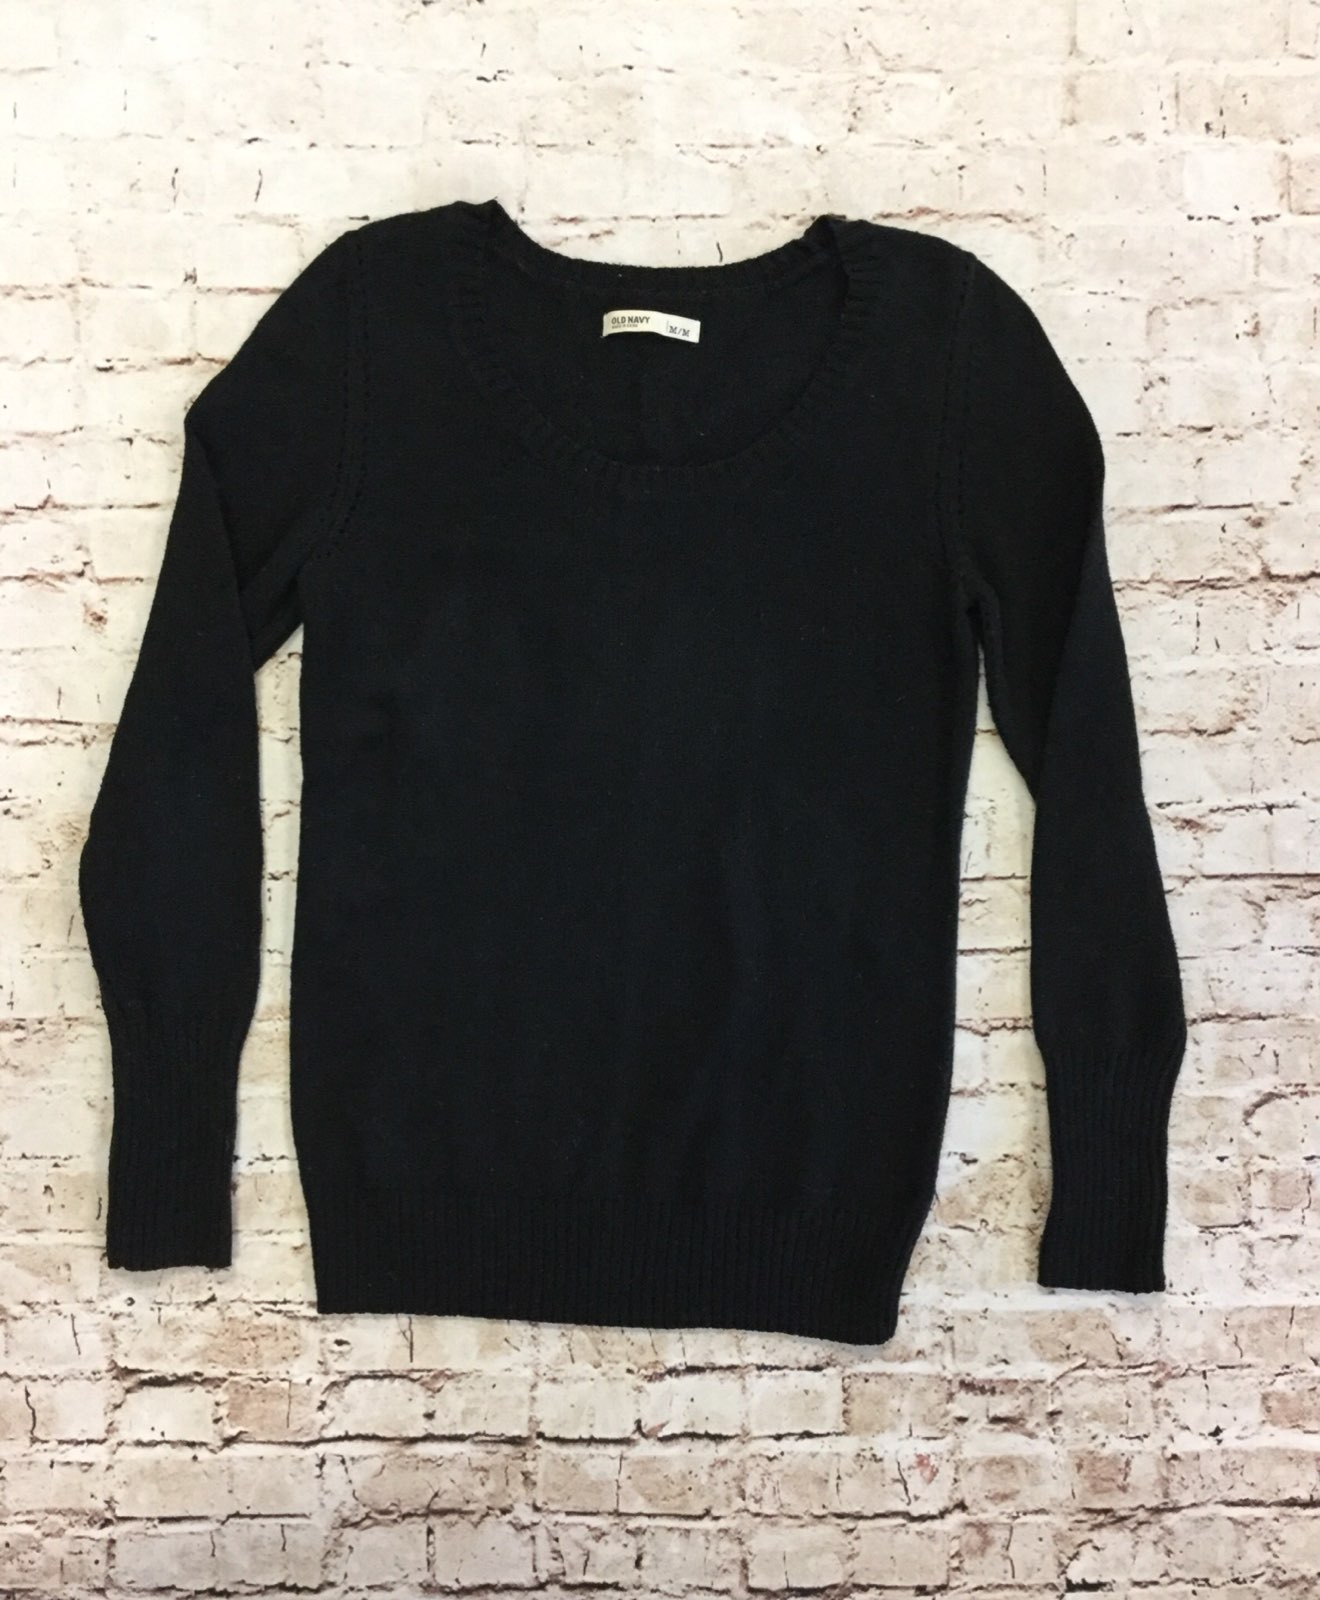 Old Navy Black Sweater - Mercari: BUY & SELL THINGS YOU LOVE